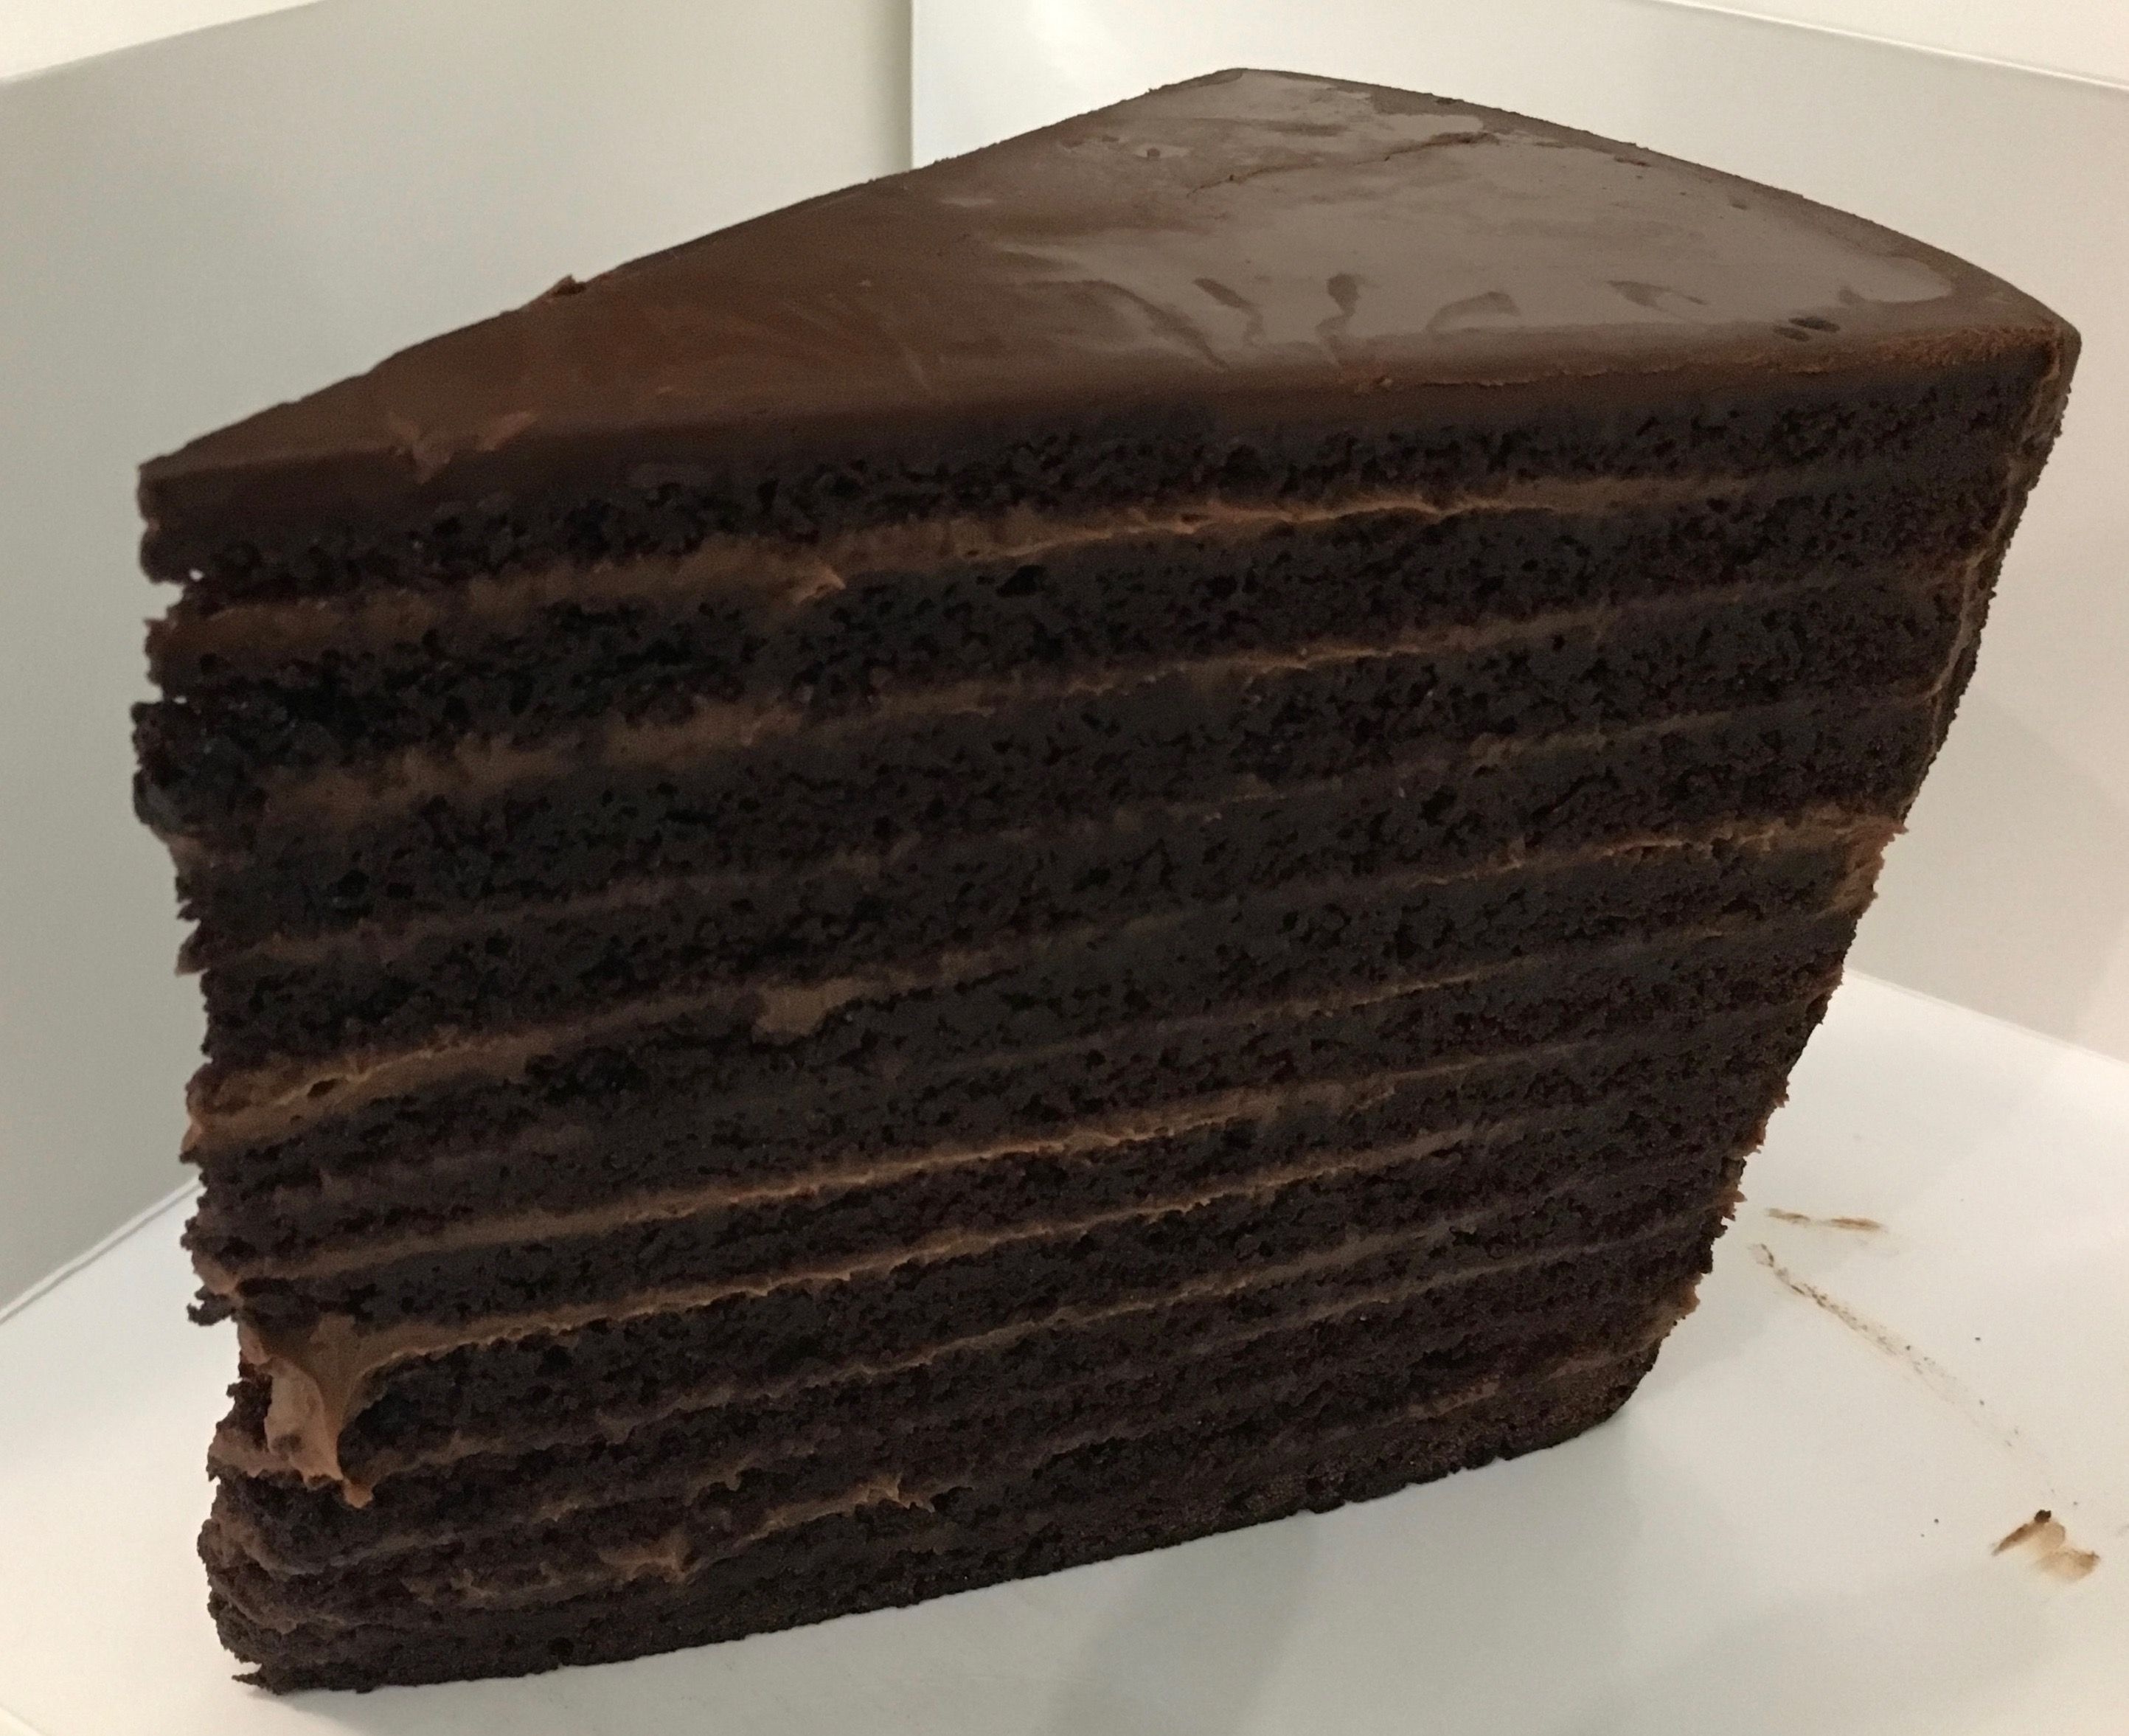 24 Layer Chocolate Cake From The Strip House Nyc Nyc Dessert